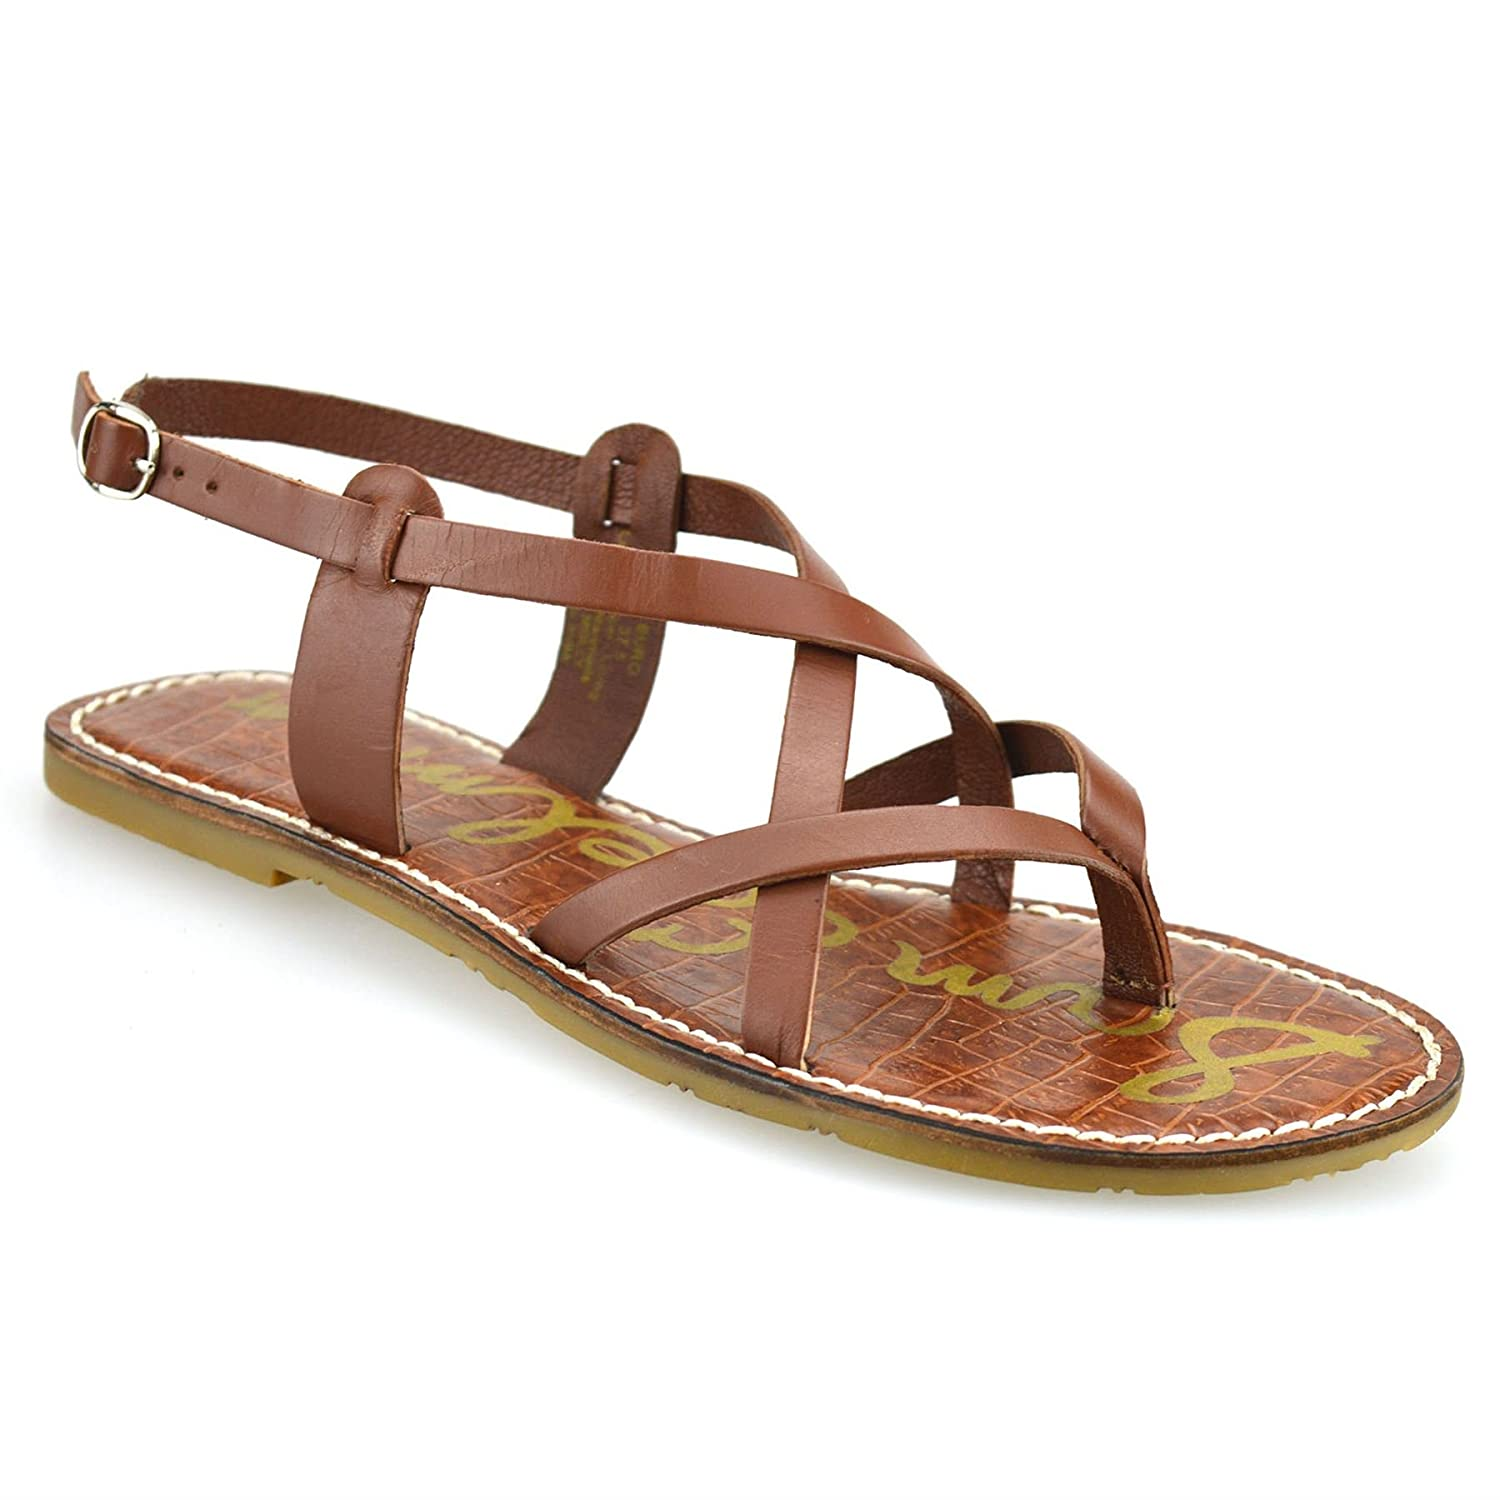 f1fb053f2d7 Ladies Womens Flat Heel Leather Ankle Strap Summer Gladiator Sandals Shoes  Size UK 5